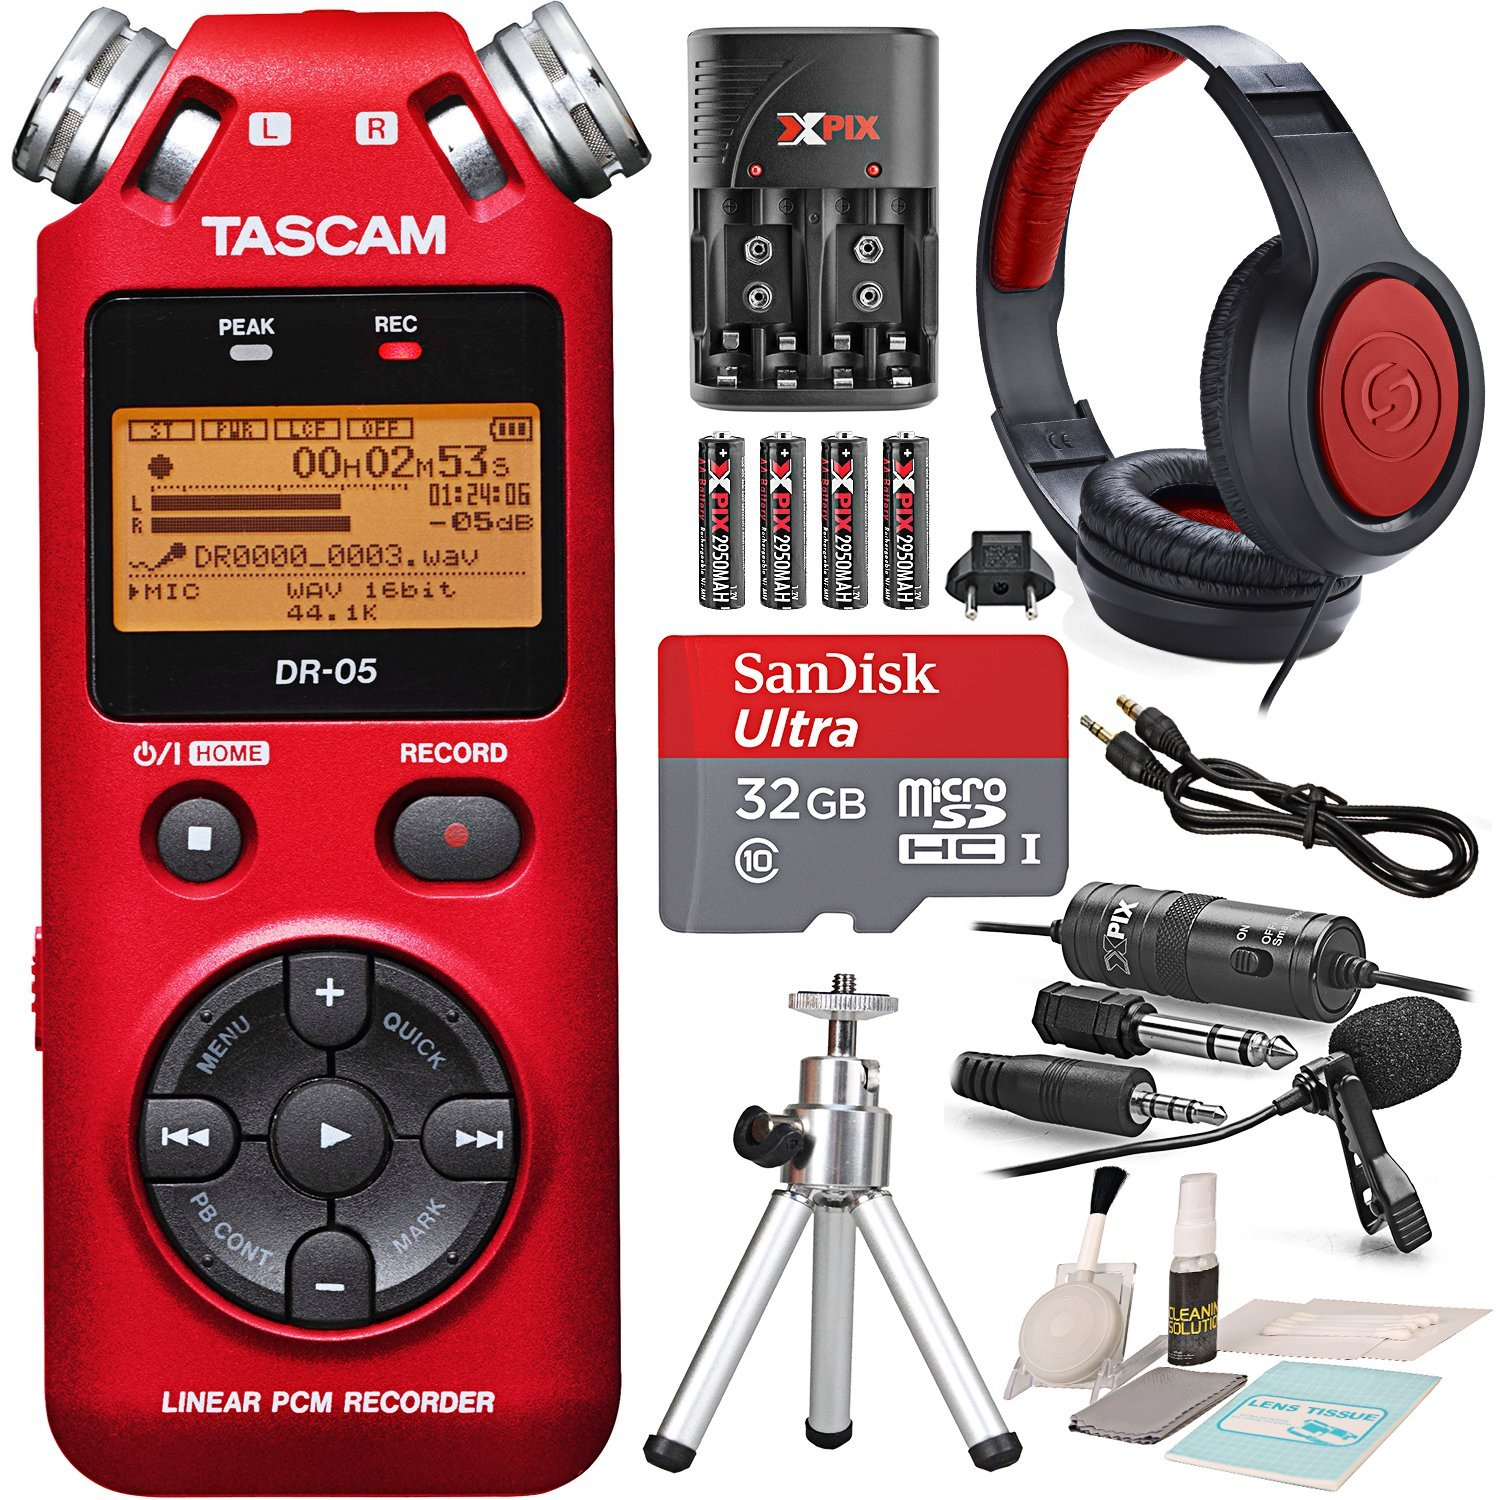 Tascam DR-05 (Version 2) Portable Handheld Digital Audio Recorder (Red) with Platnium accessory bundle Photo Savings PS-DR-05RED